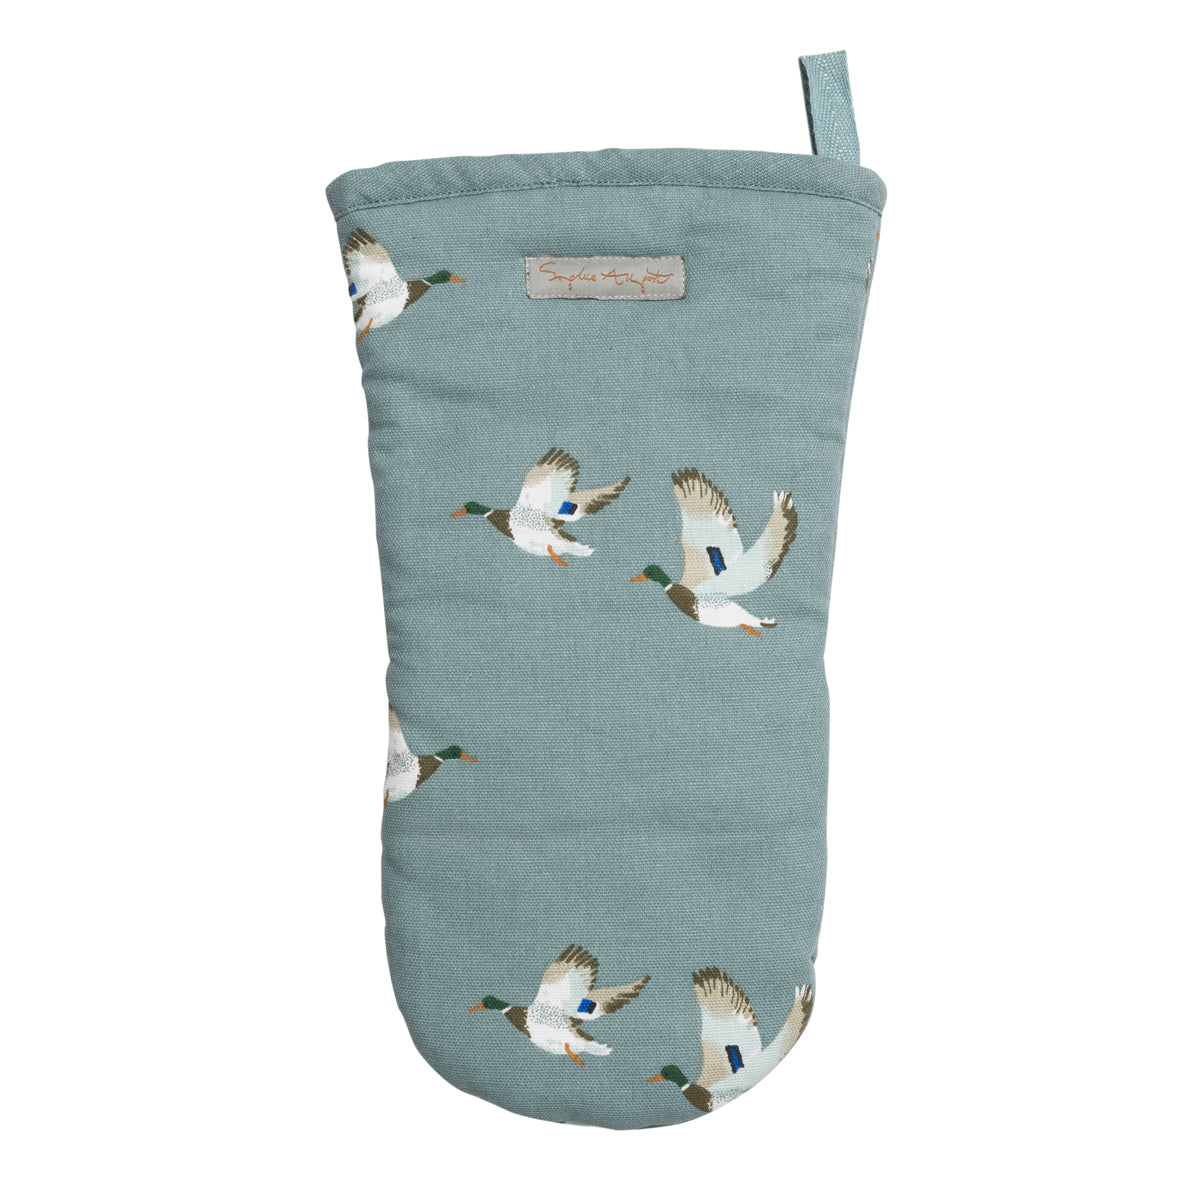 Ducks Oven Mitt by Sophie Allport